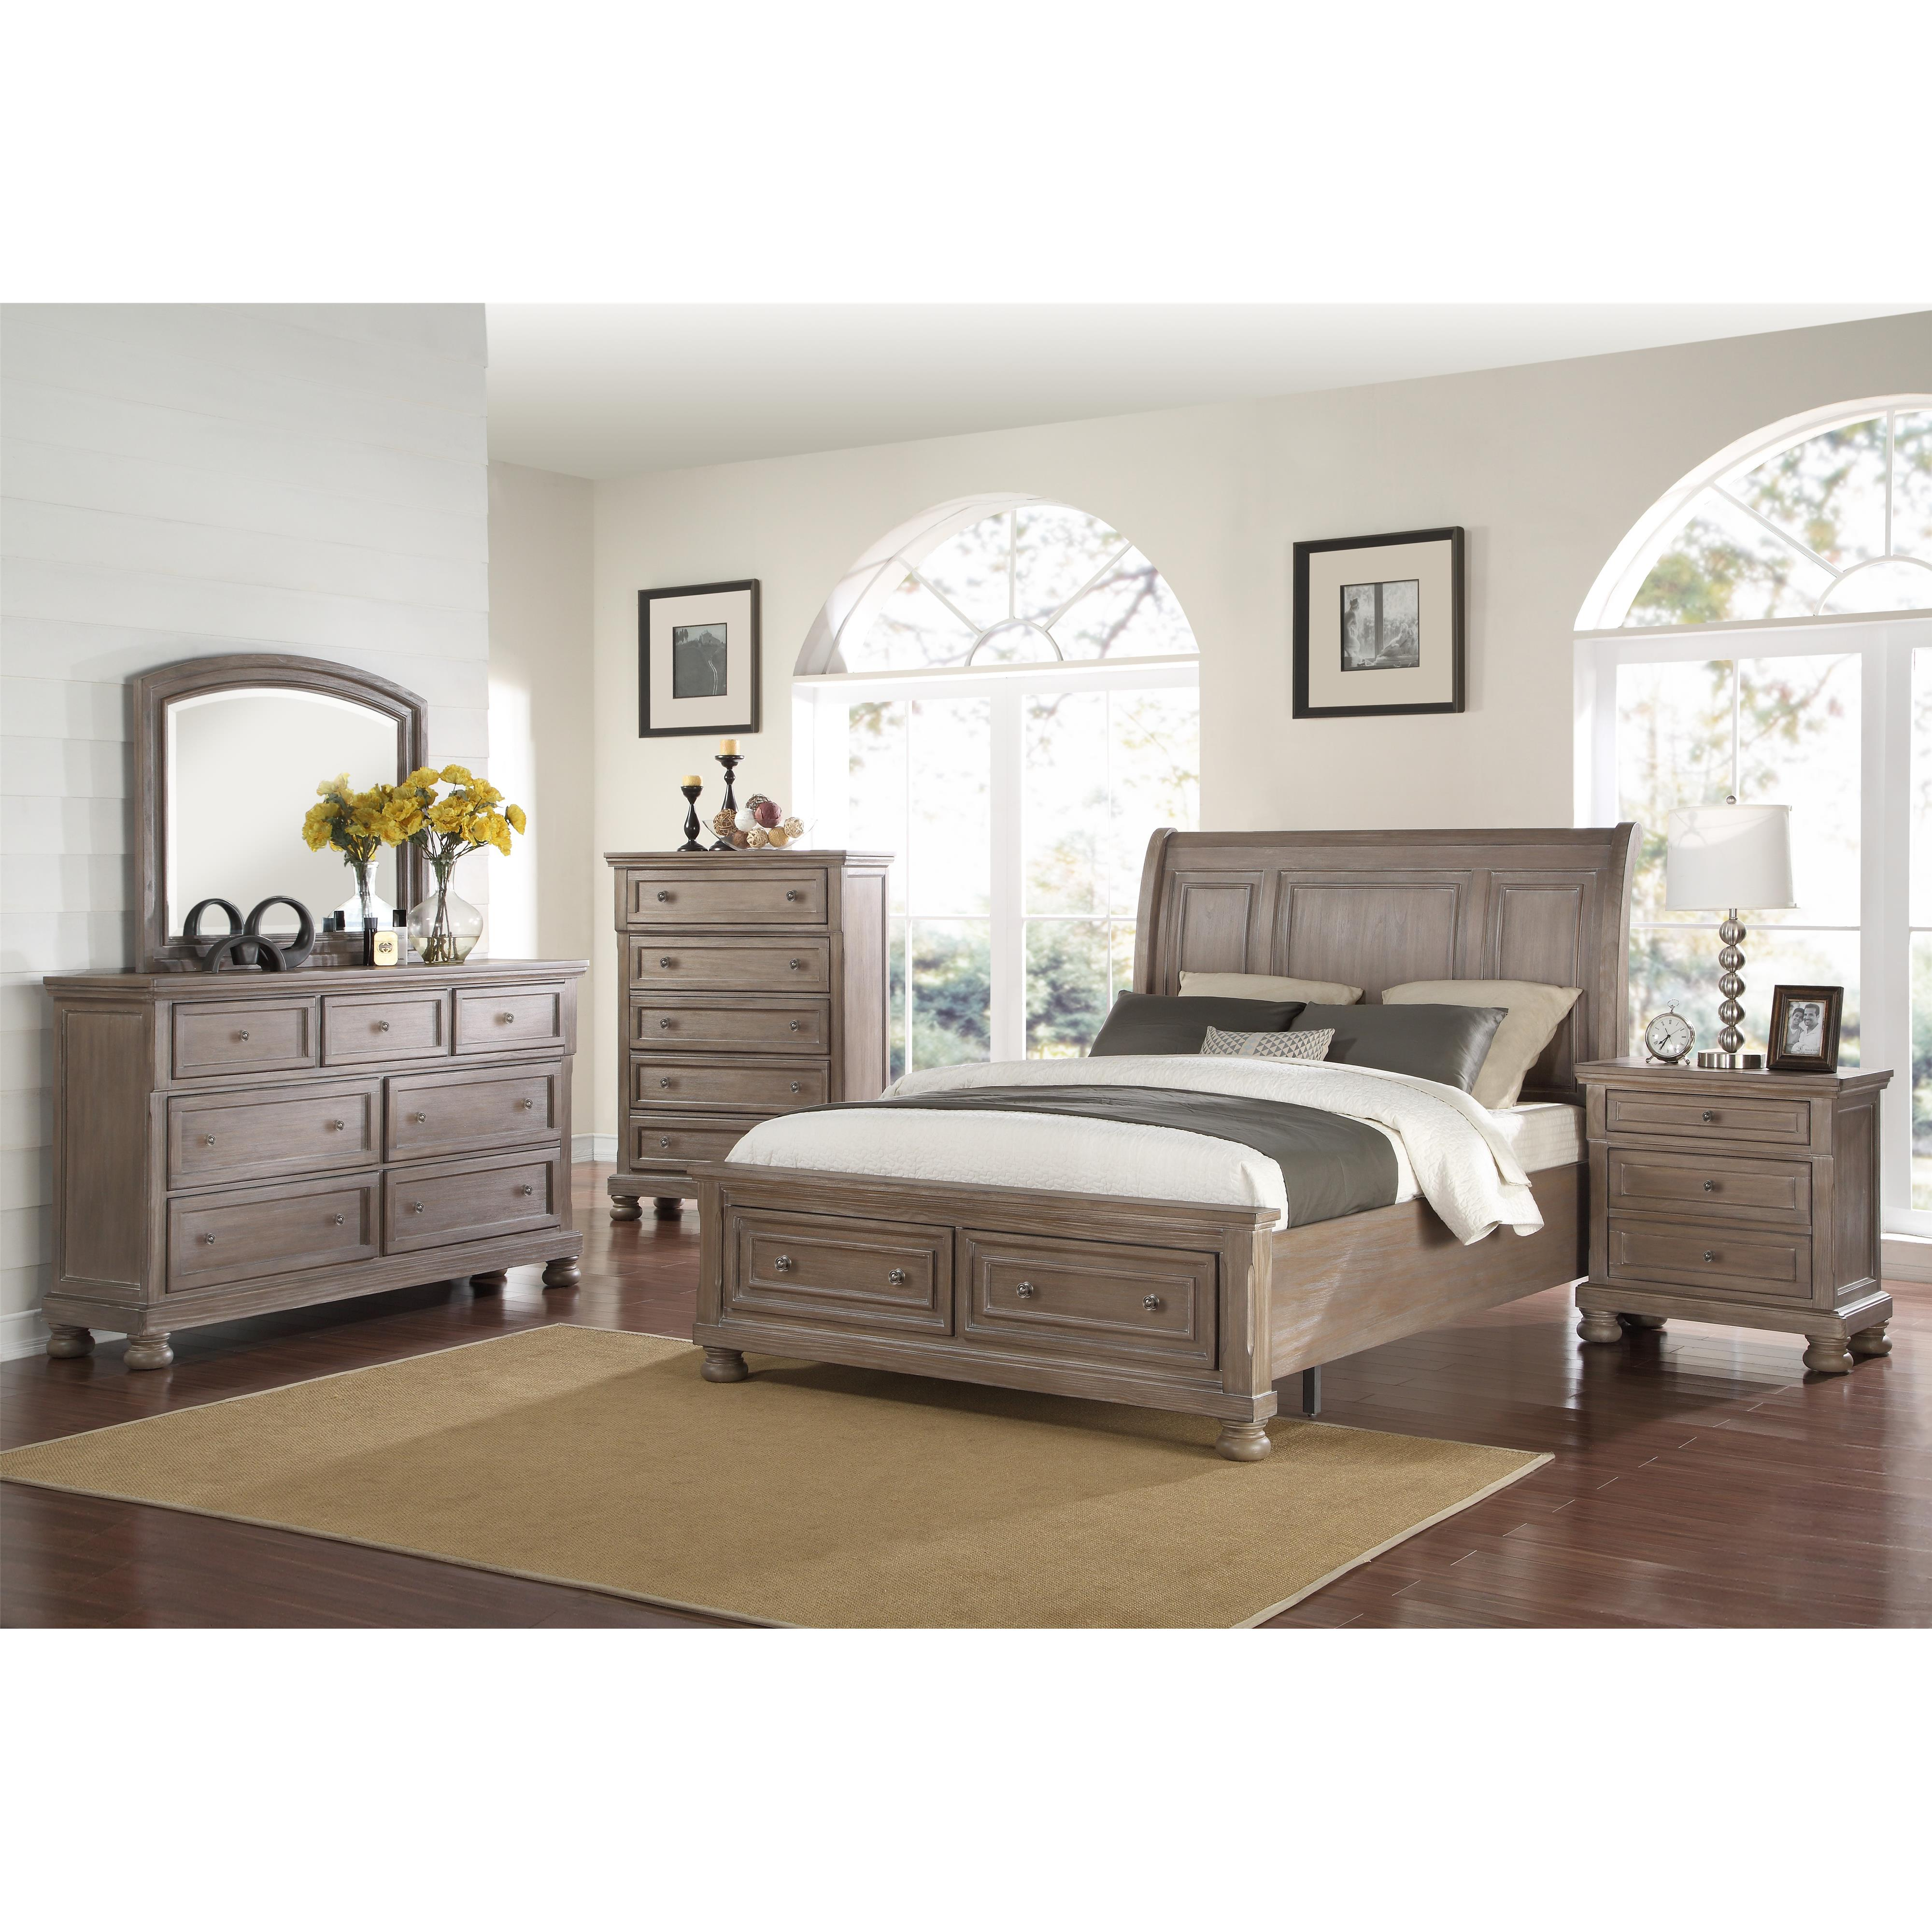 New Classic Allegra California King Bedroom Group